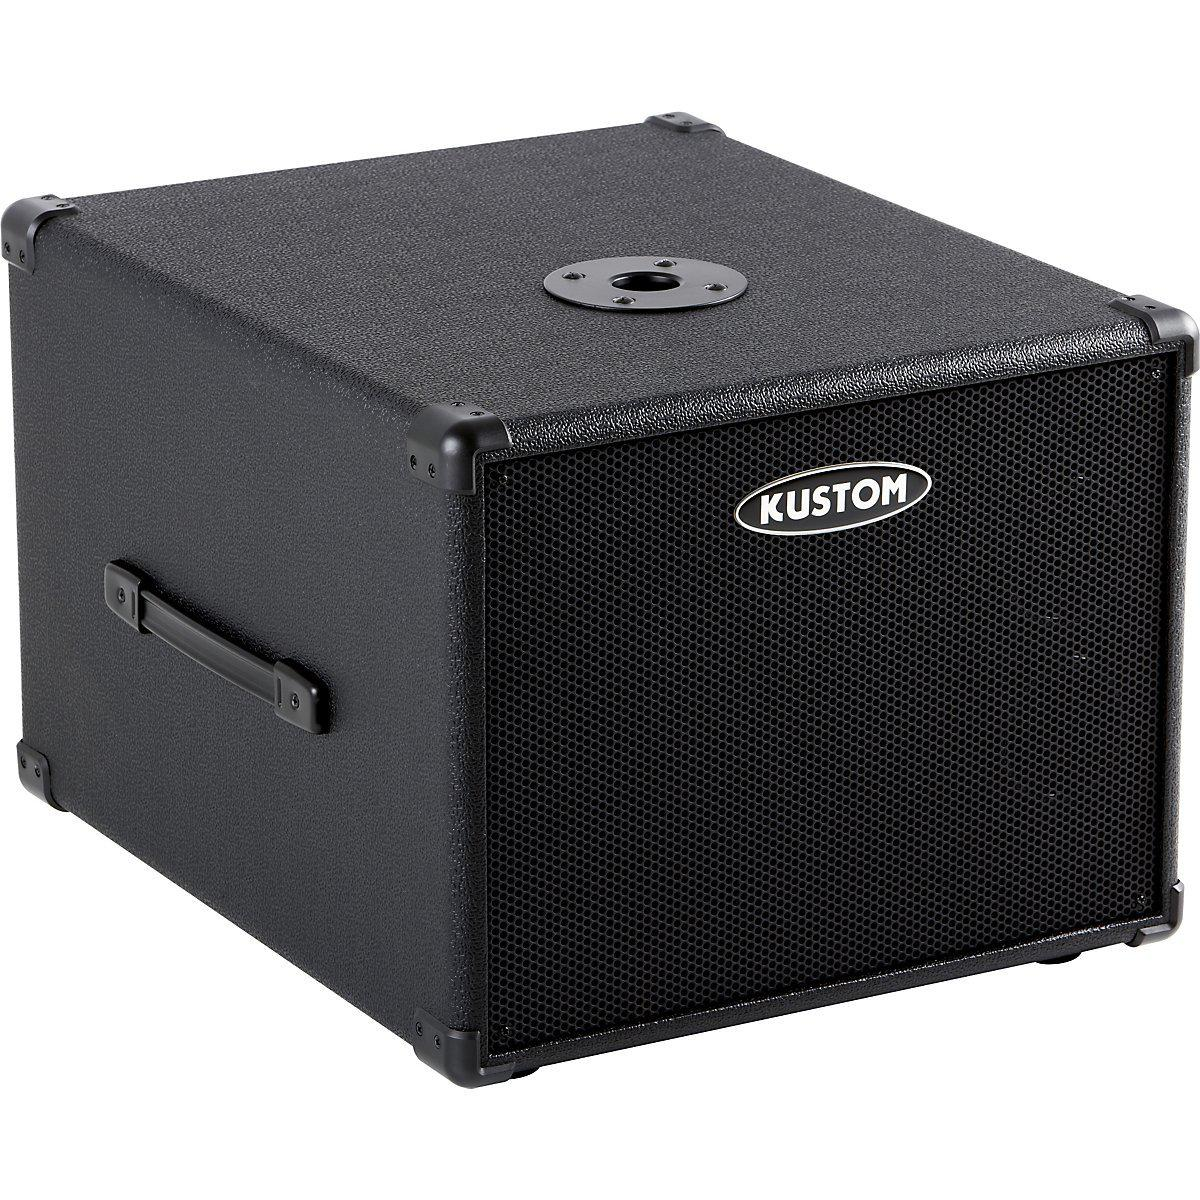 kustom pa pa112s powered sub from amazon things i want as gifts. Black Bedroom Furniture Sets. Home Design Ideas